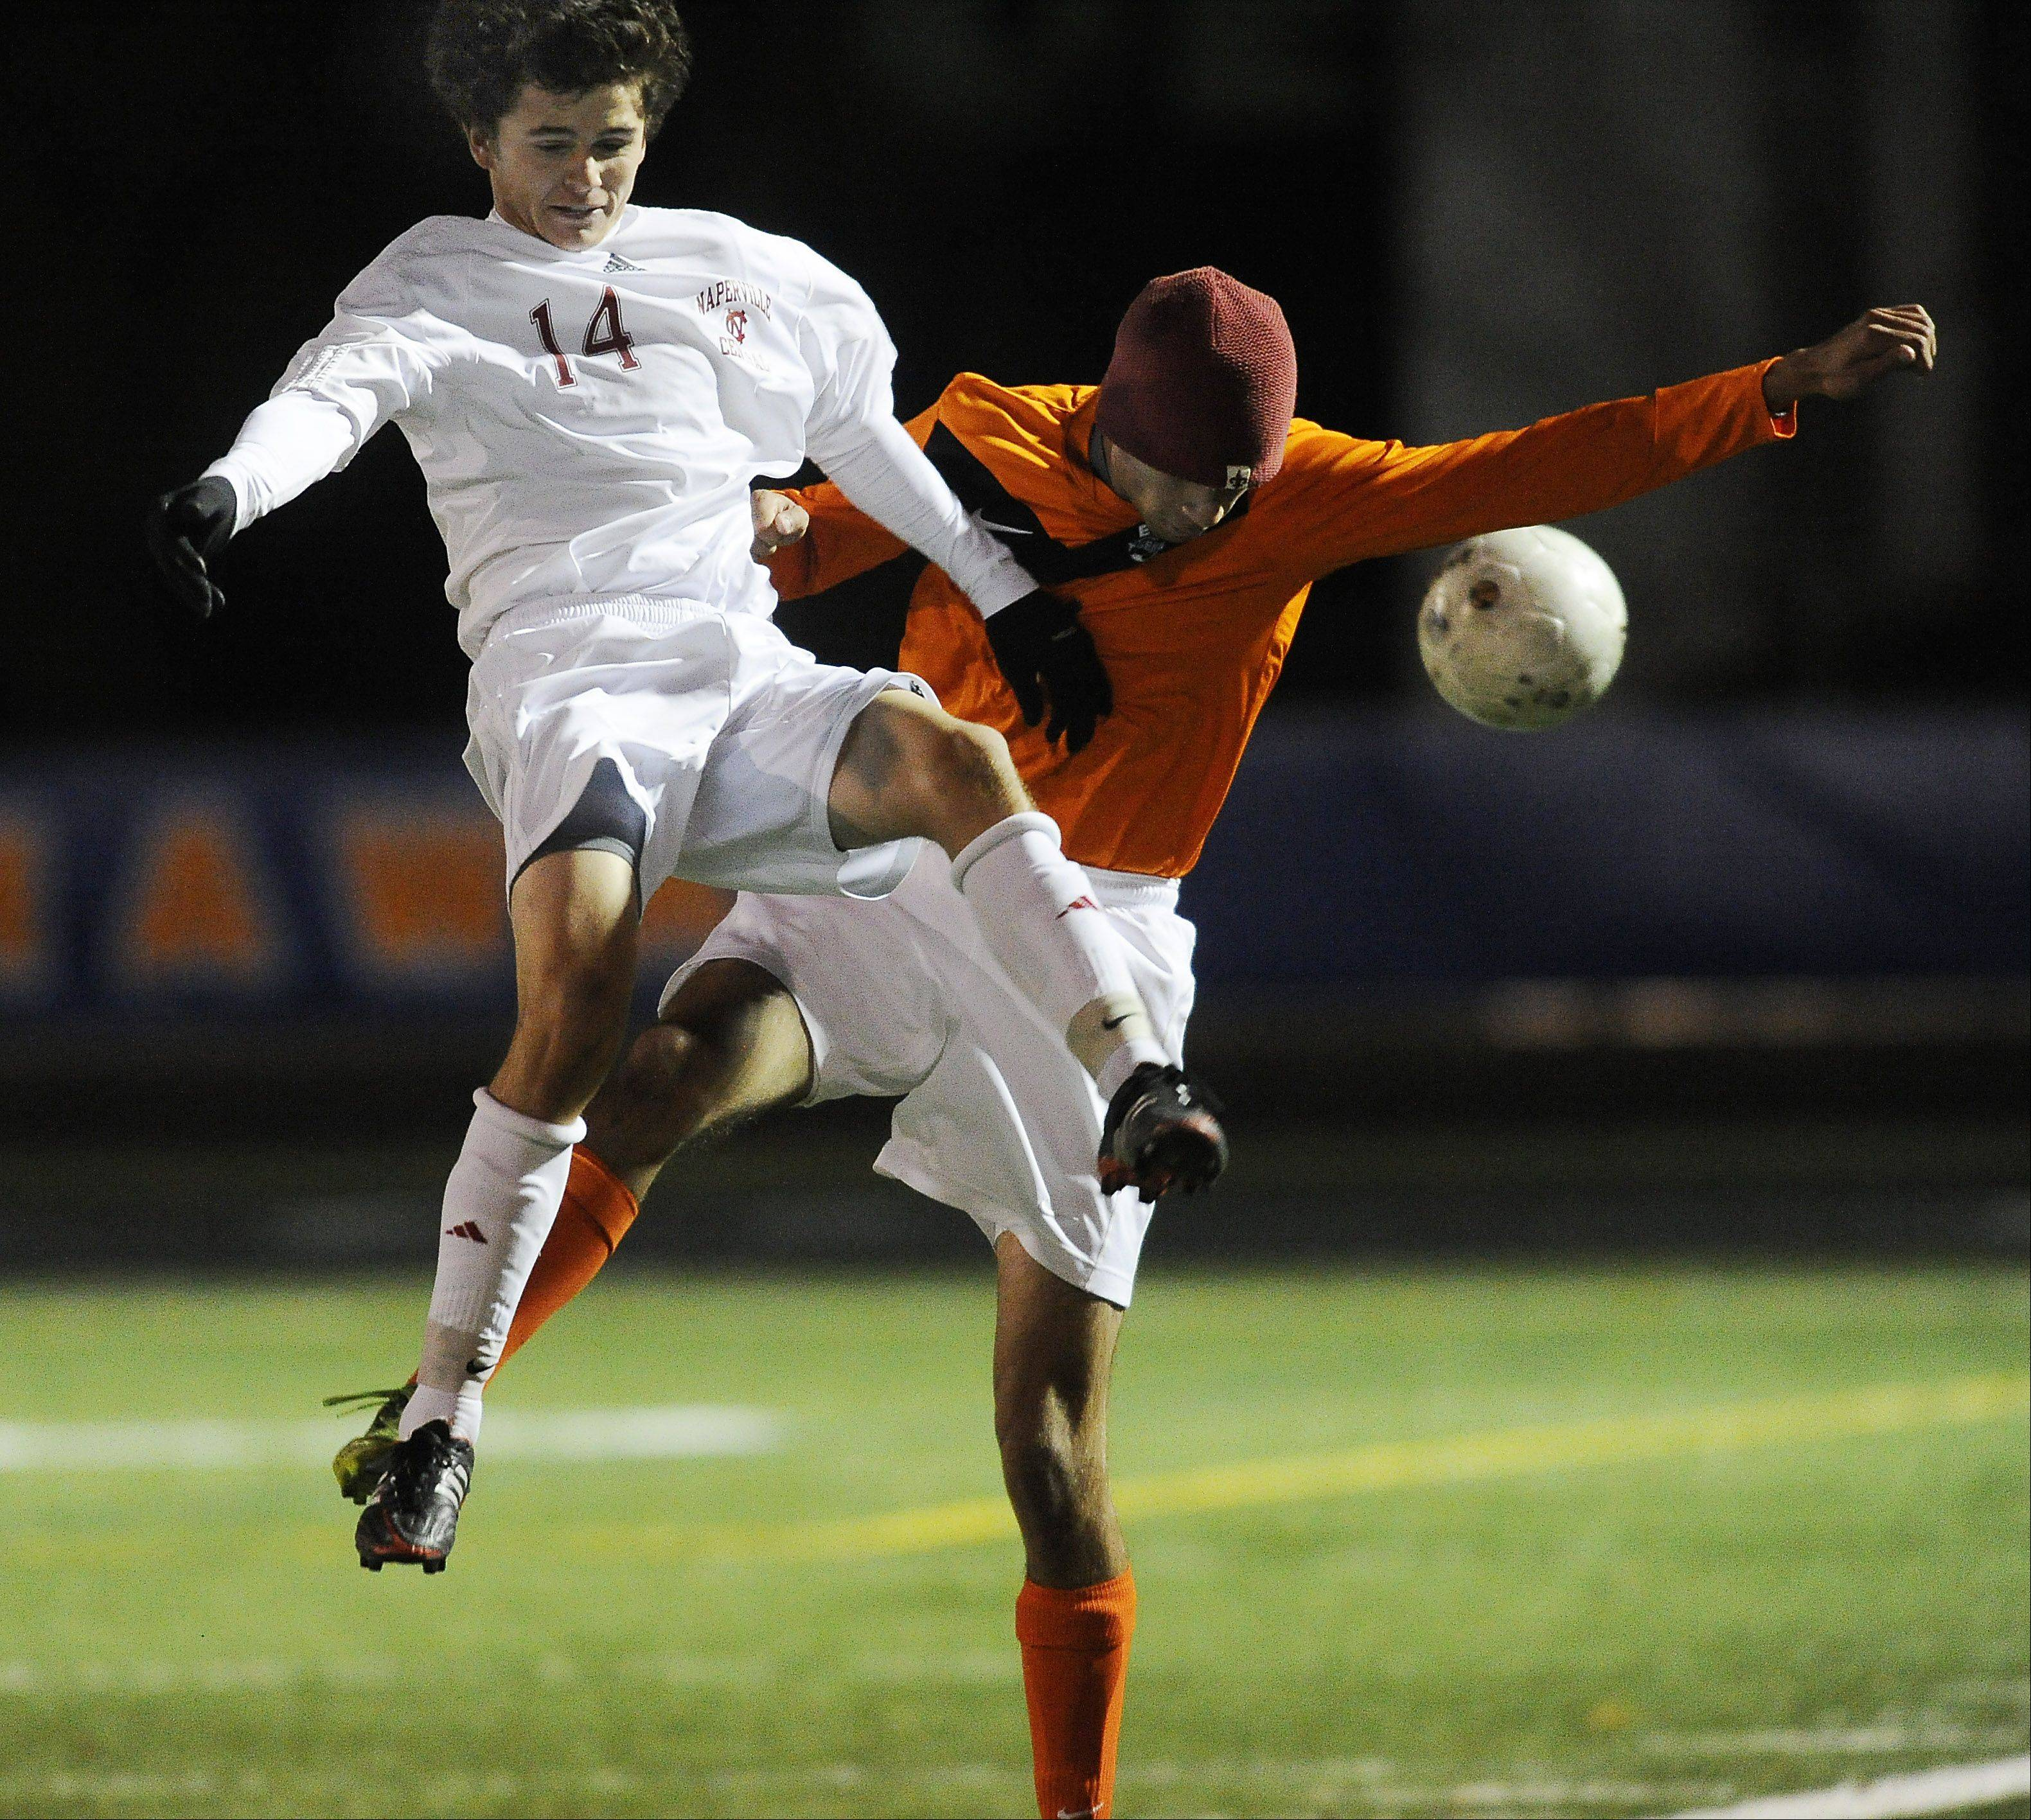 Naperville Central's David Murphy goes up against Edwardsville's Suleman Bazai.